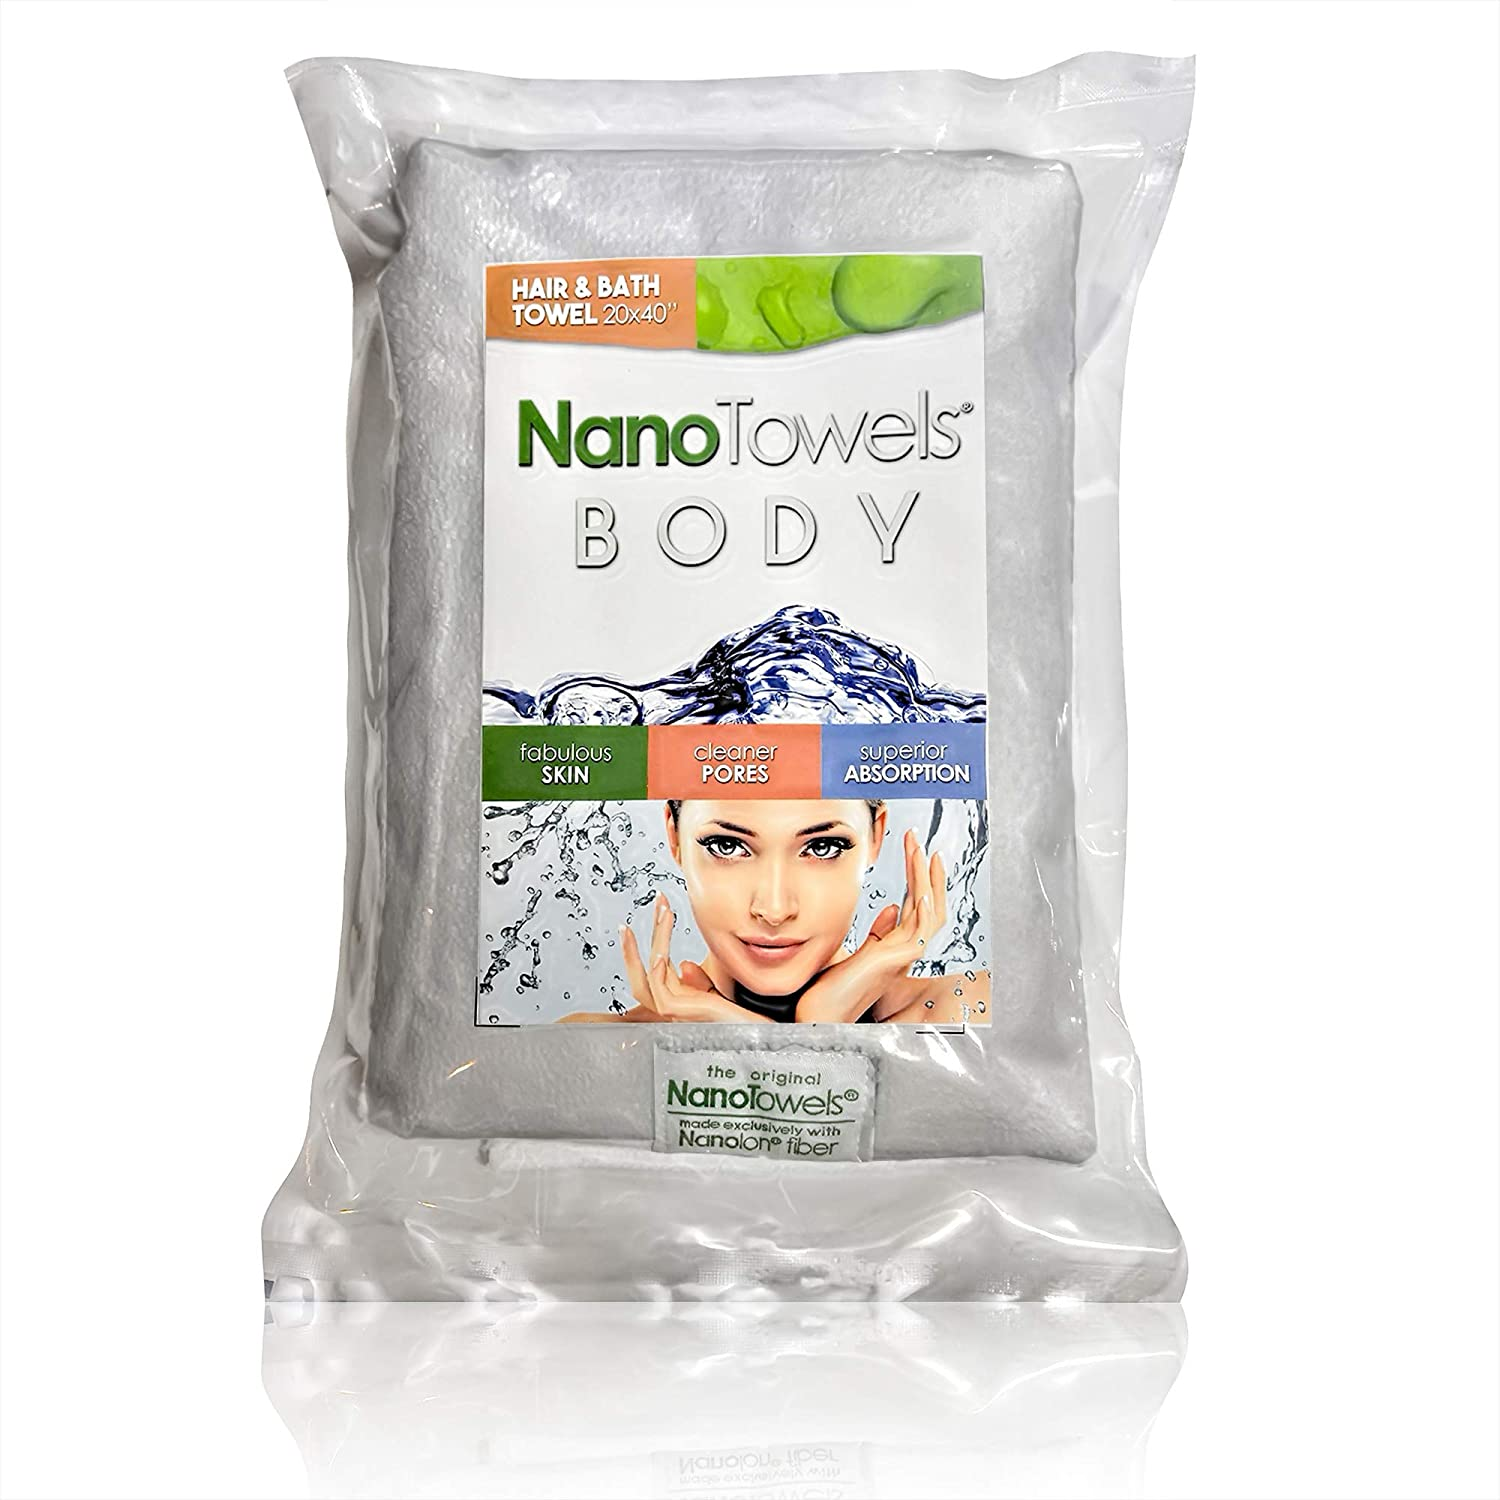 Nano Towels Bath & Shower Towel